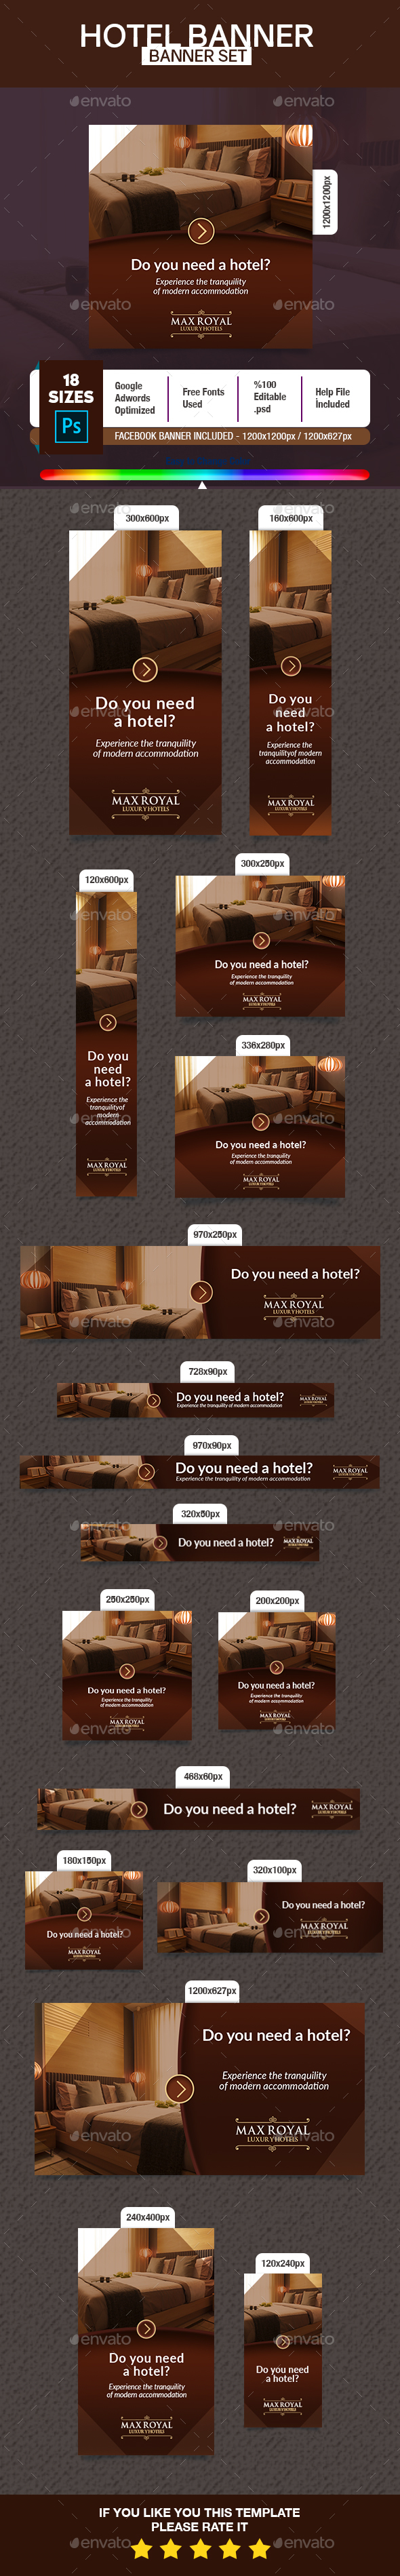 Luxury Hotel Banner - Banners & Ads Web Elements